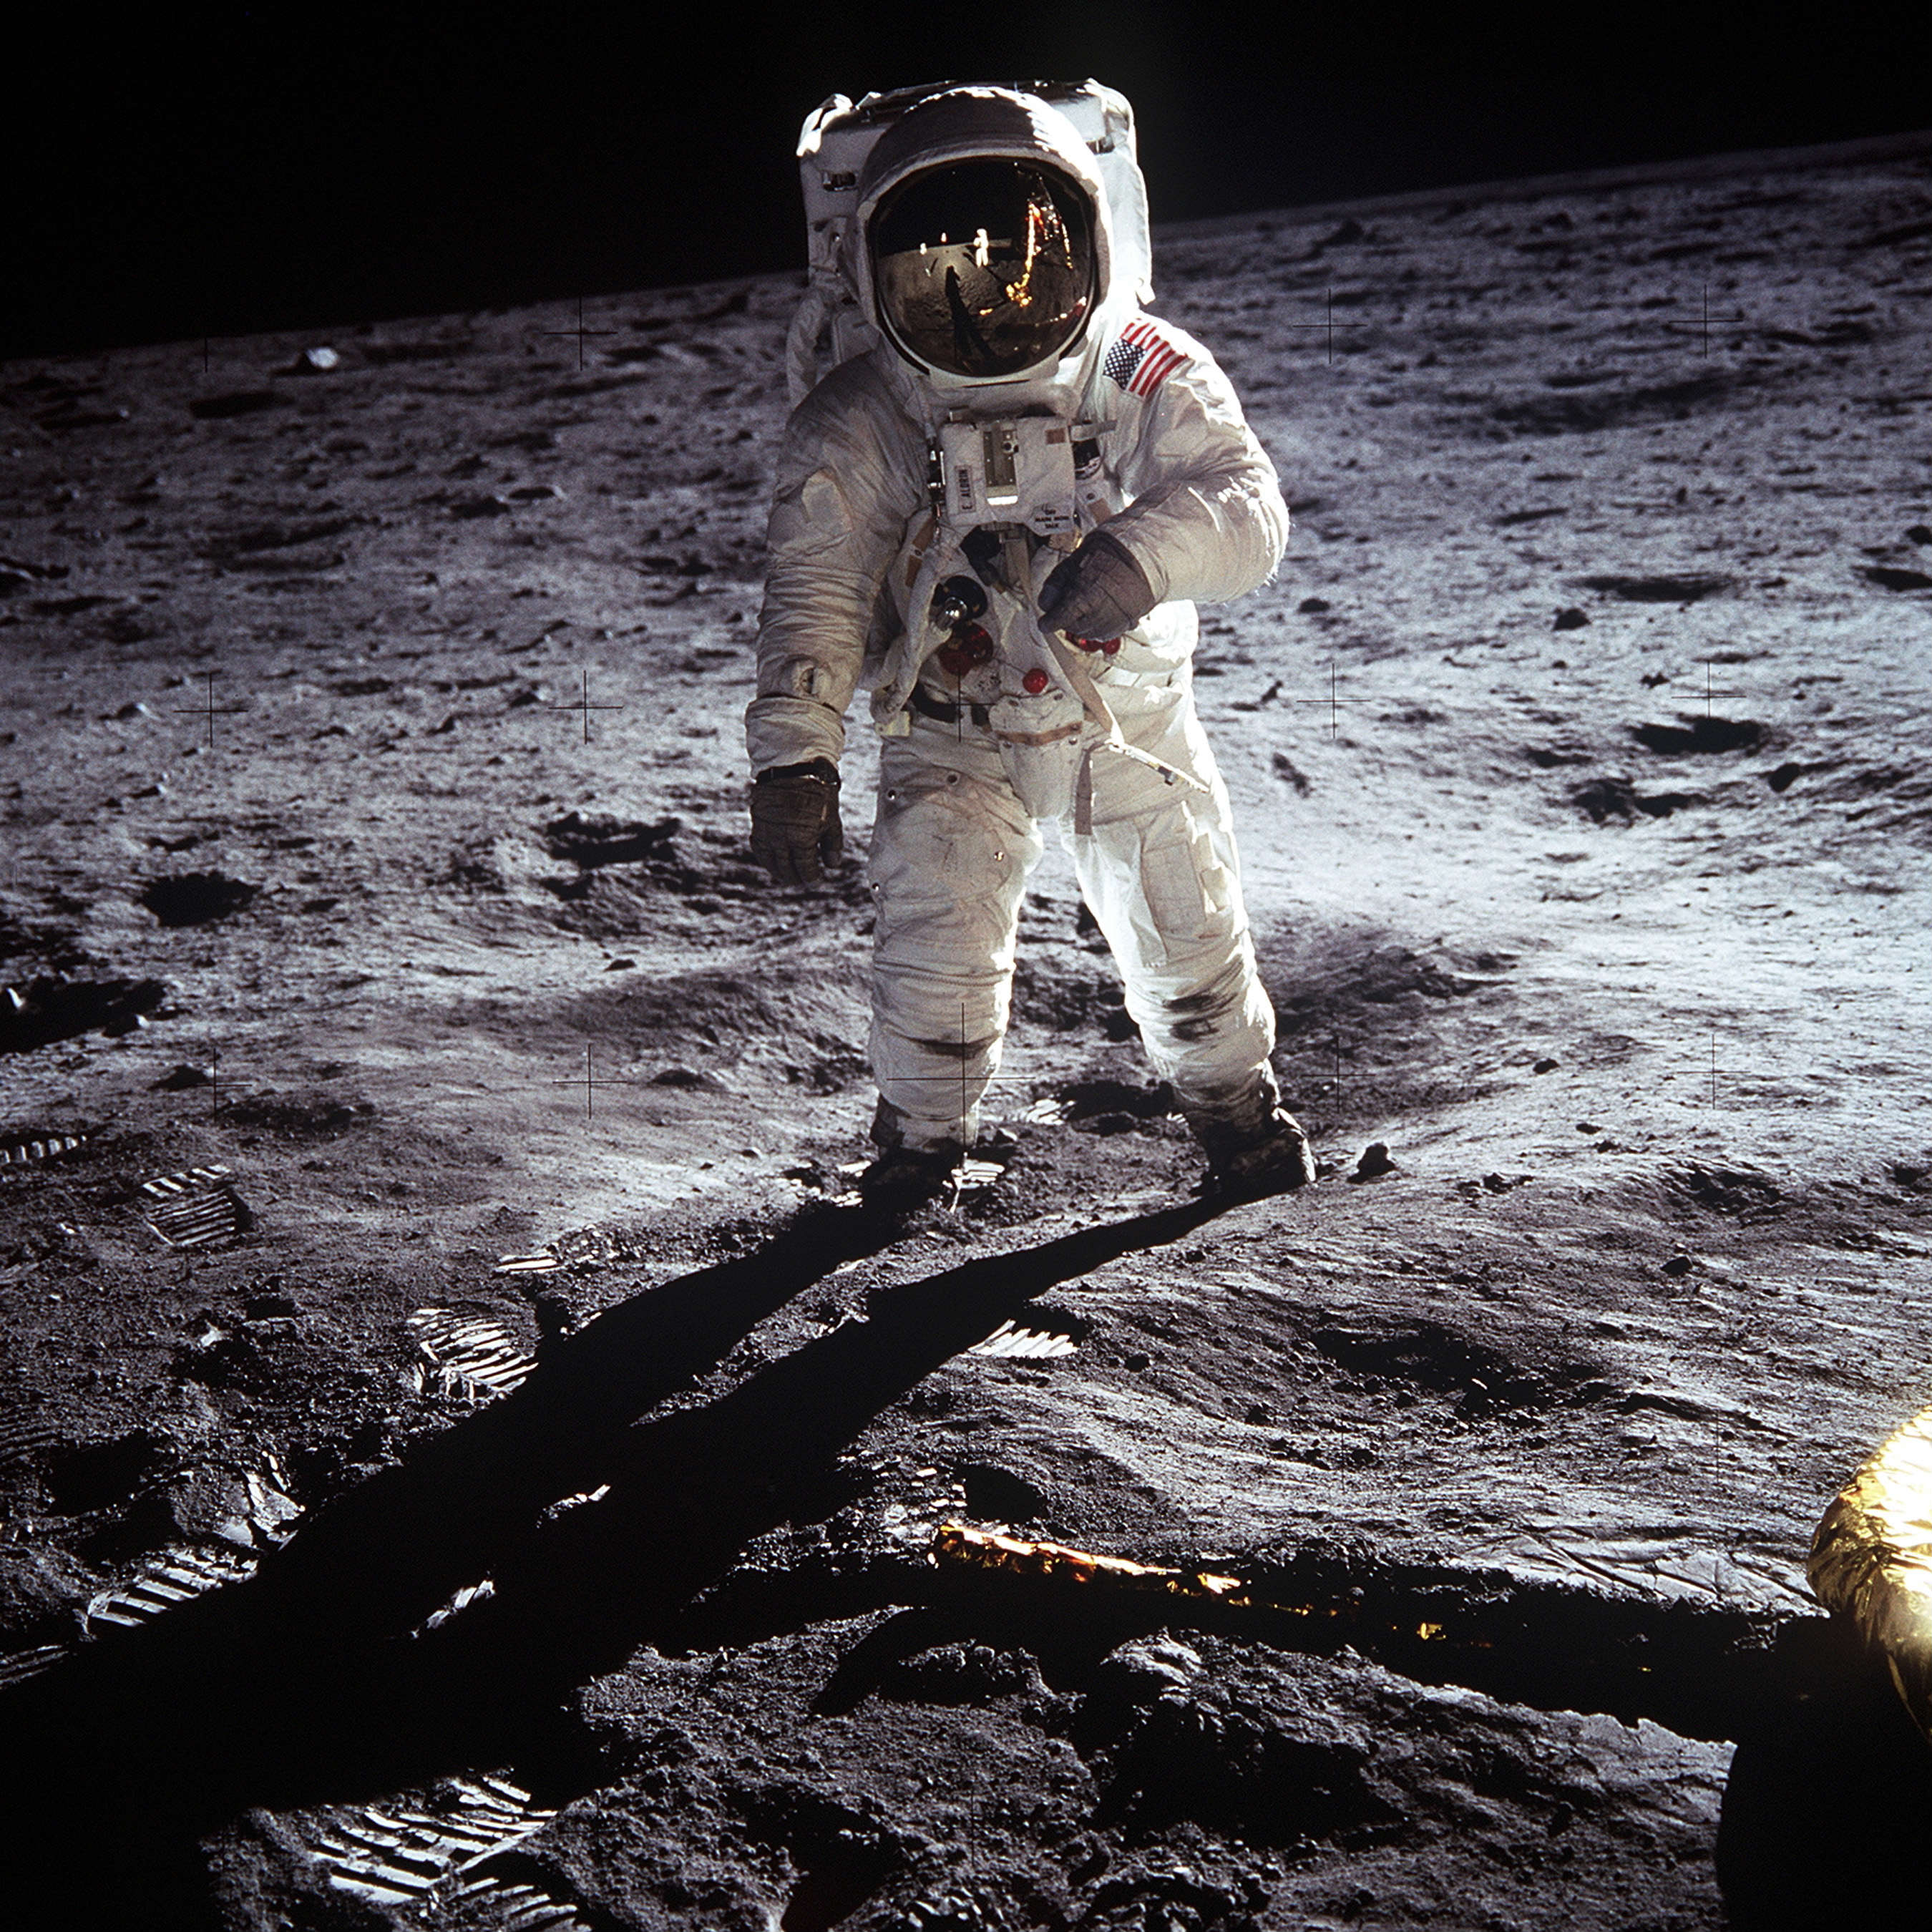 "This NASA file image shows Apollo 11 U.S. astronaut Buzz Aldrin standing on the Moon, next to the Lunar Module ""Eagle"" (R), July 20, 1969. Apollo 11 was launched forty years ago today on July 16, 1969, and carried astronauts Neil Armstrong, who was the Mission Commander and the first man to step on the Moon, Aldrin, who was the Lunar Module Pilot, and Michael Collins, who was the Command Module pilot. Armstrong took this photograph. REUTERS/Neil Armstrong-NASA/Handout"